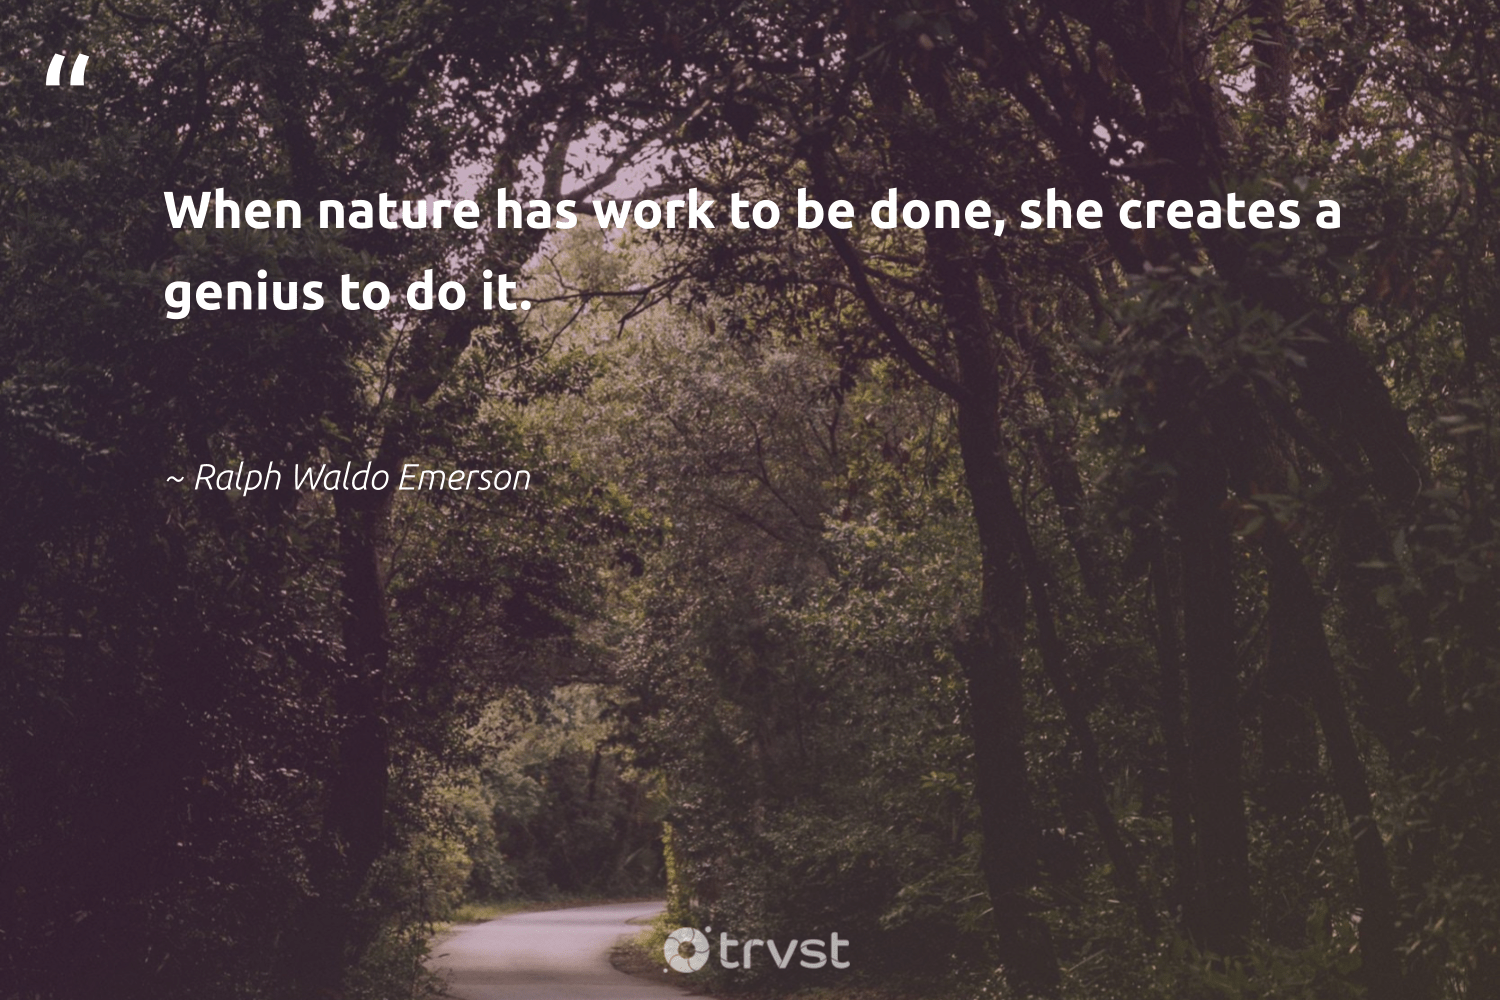 """""""When nature has work to be done, she creates a genius to do it.""""  - Ralph Waldo Emerson #trvst #quotes #environment #nature #earth #climatechange #environmentallyfriendly #impact #mothernature #getoutside #ecofriendly #socialchange"""